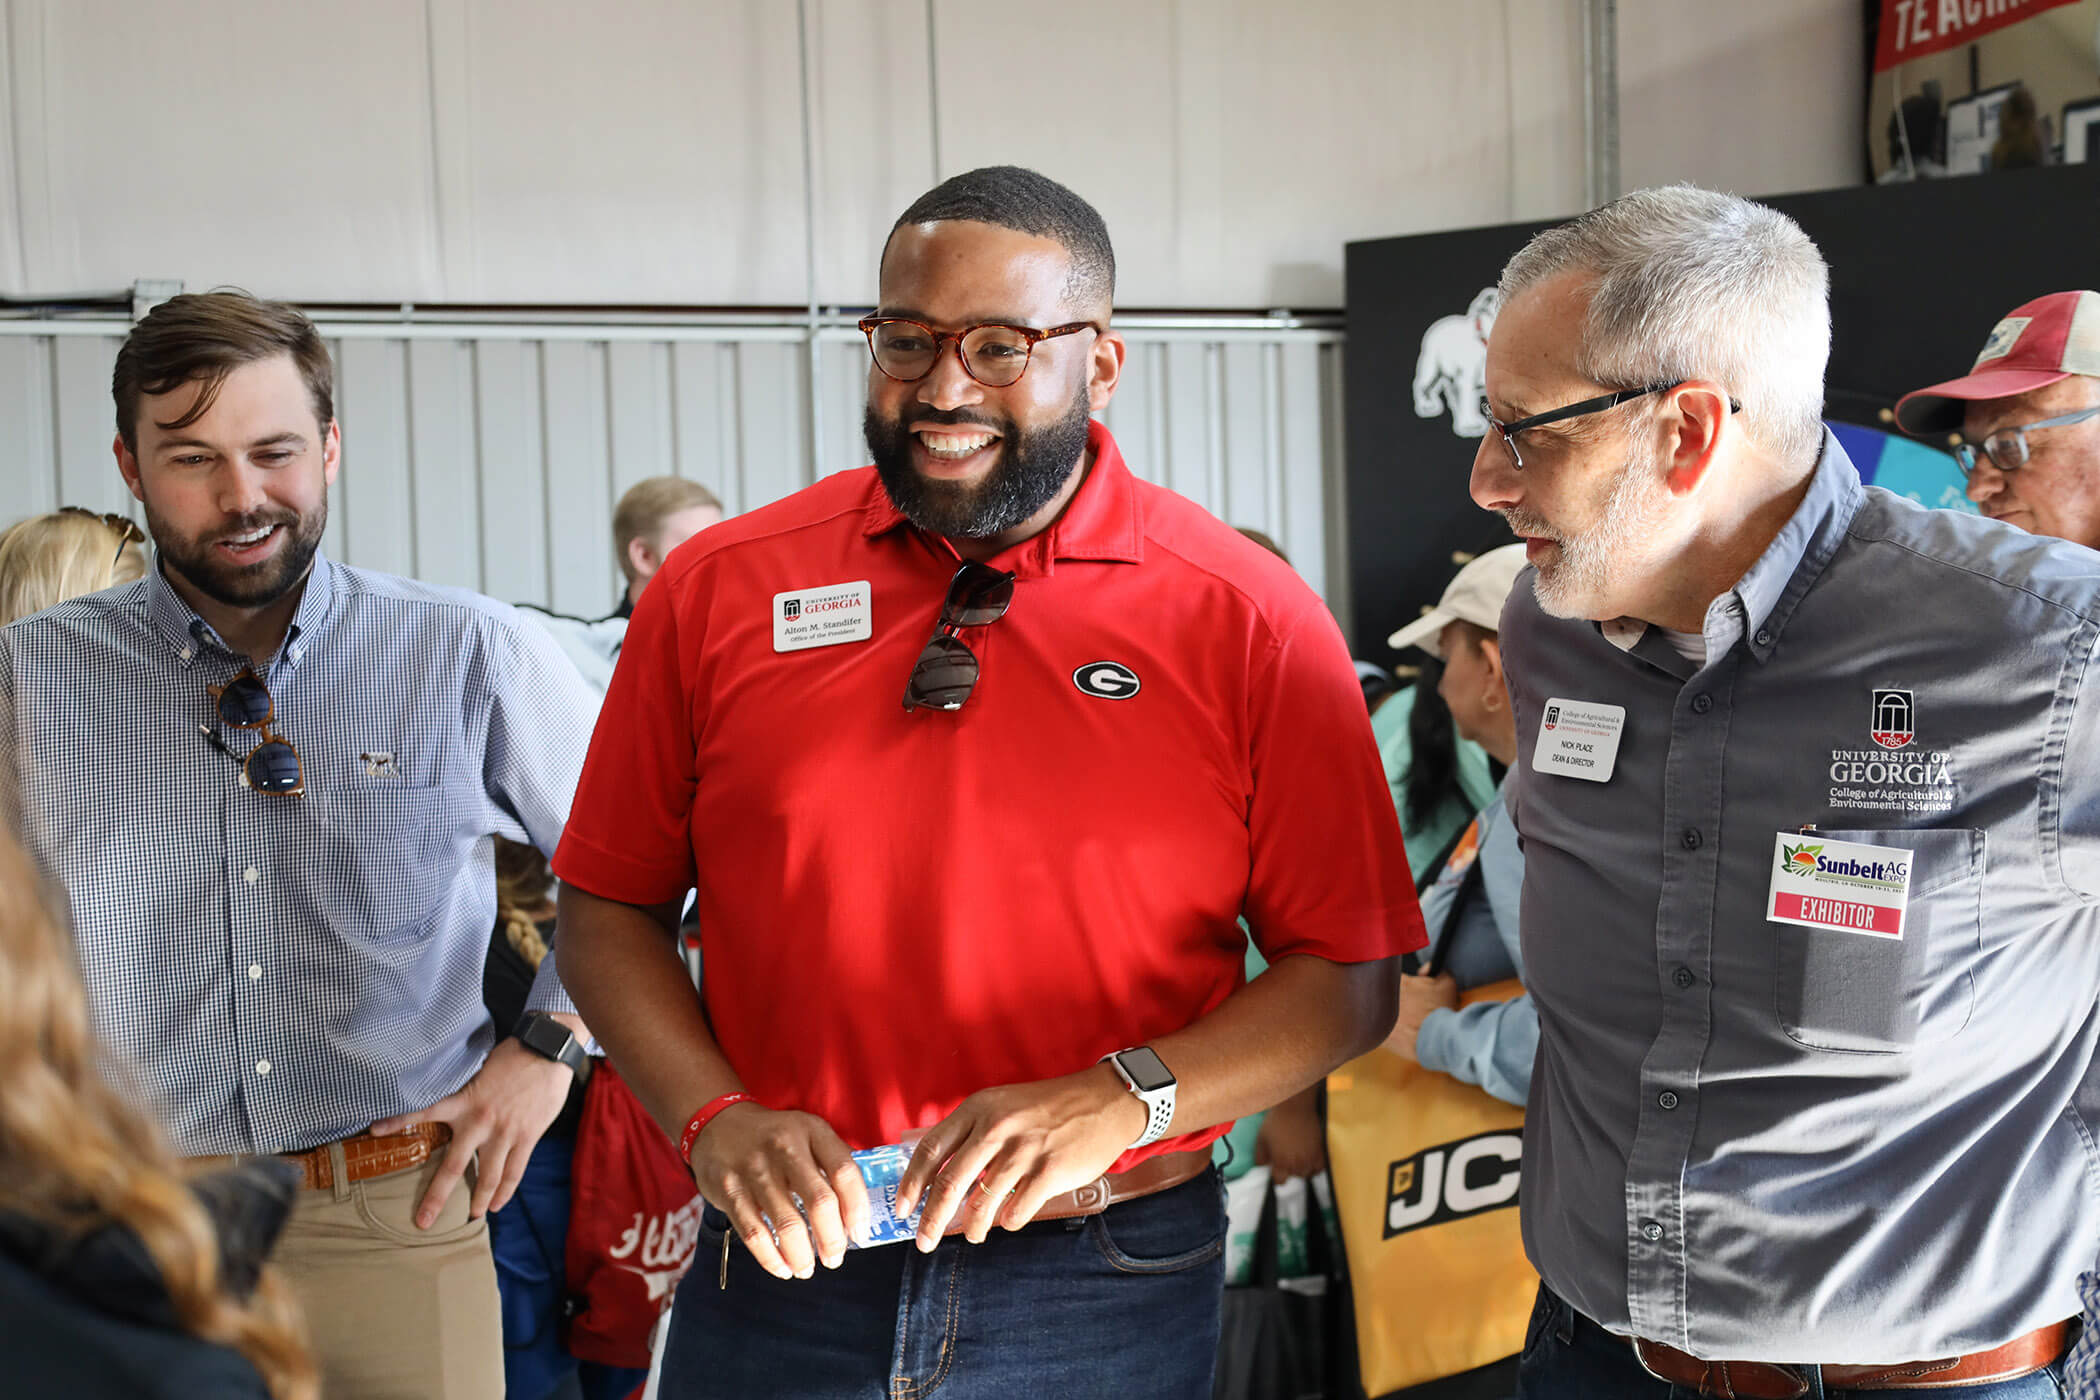 From left, Blake Raulerson, Alton Standifer and Nick Place talk with CAES Ambassadors at the Sunbelt Ag Expo in Moultrie, Georgia. (Photo by Claire Sanders)